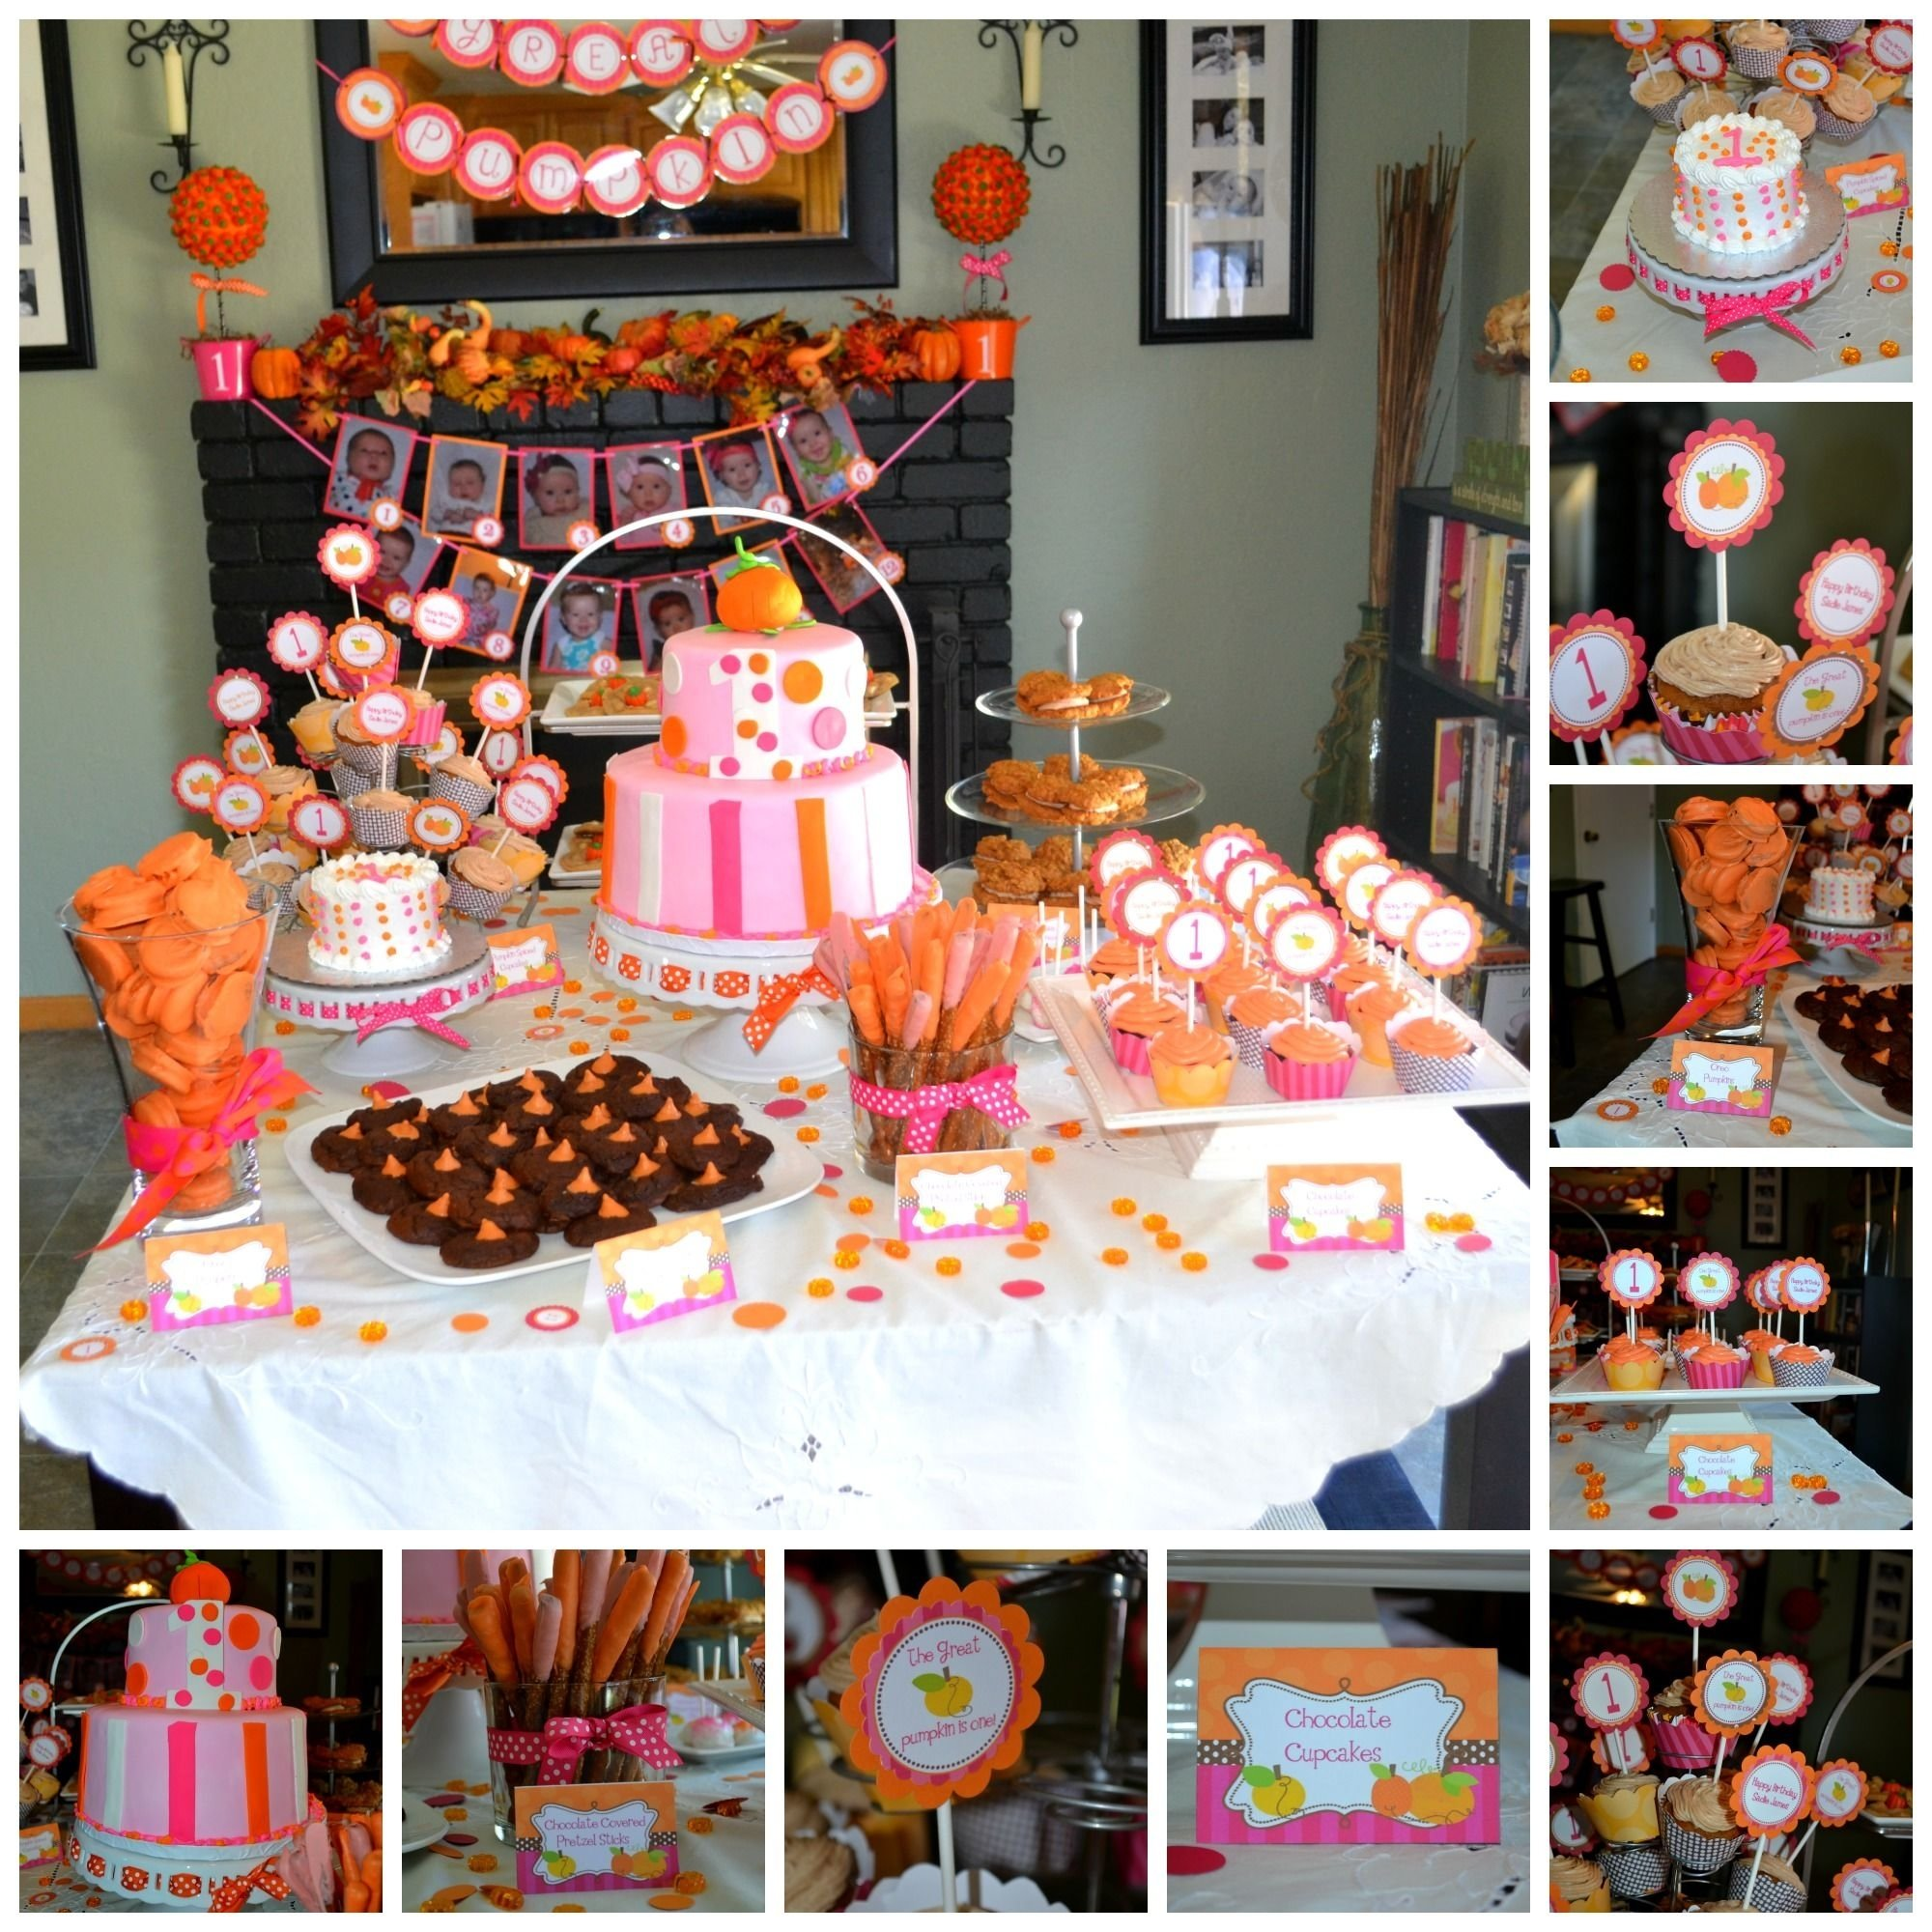 10 Stylish Fall First Birthday Party Ideas pumpkin birthday dessert table party ideas pinterest birthday 2020